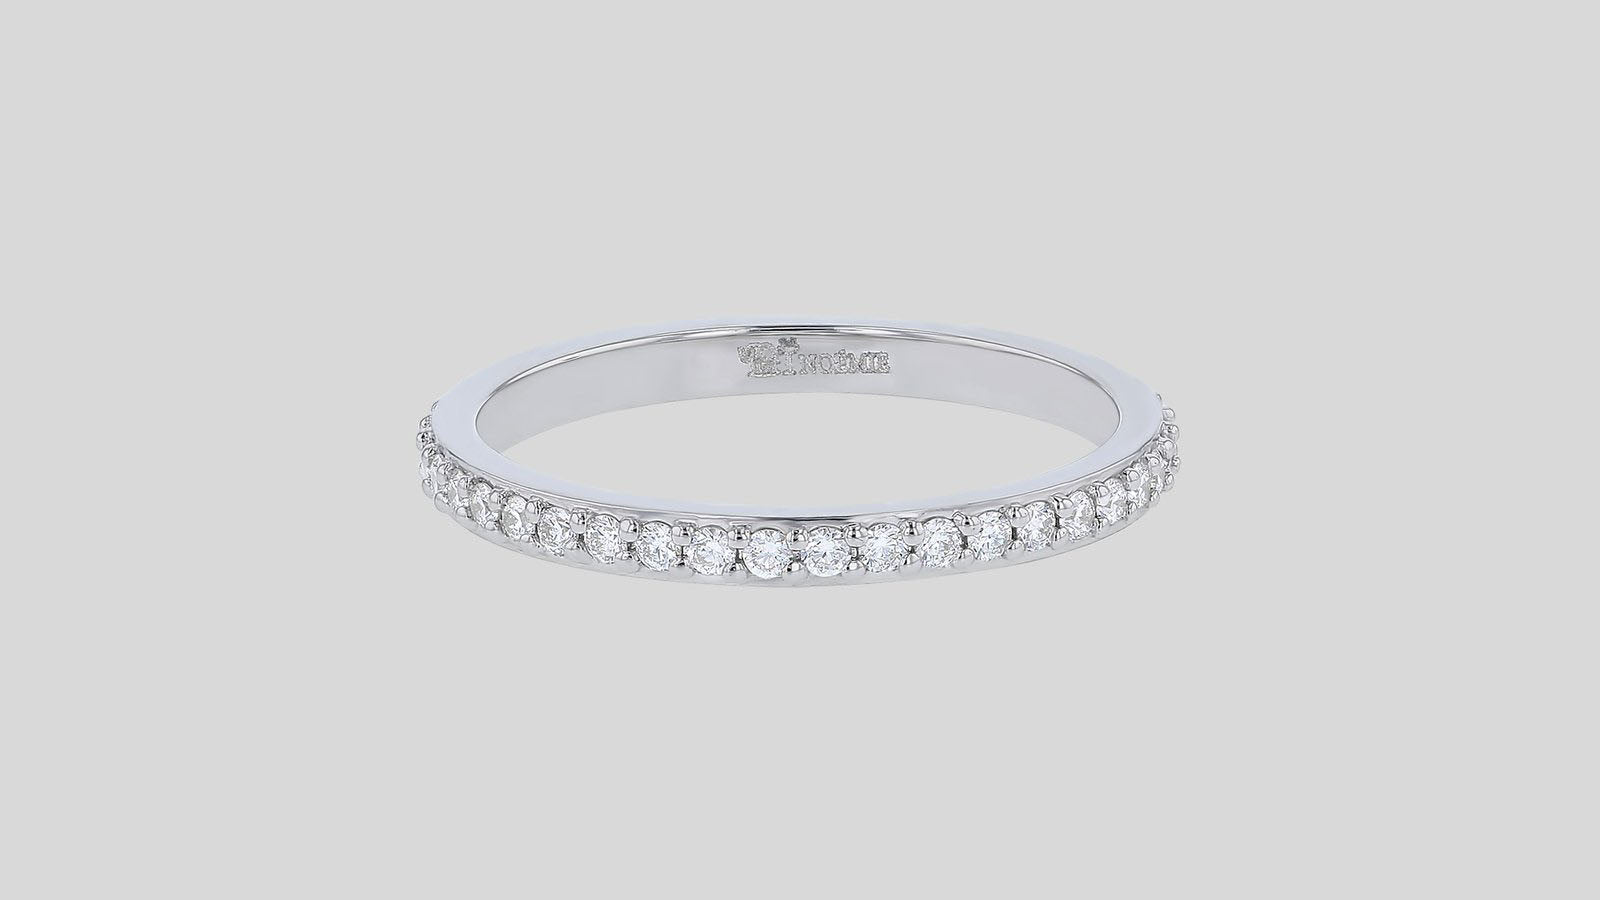 The Diamond Eternity Band Ring